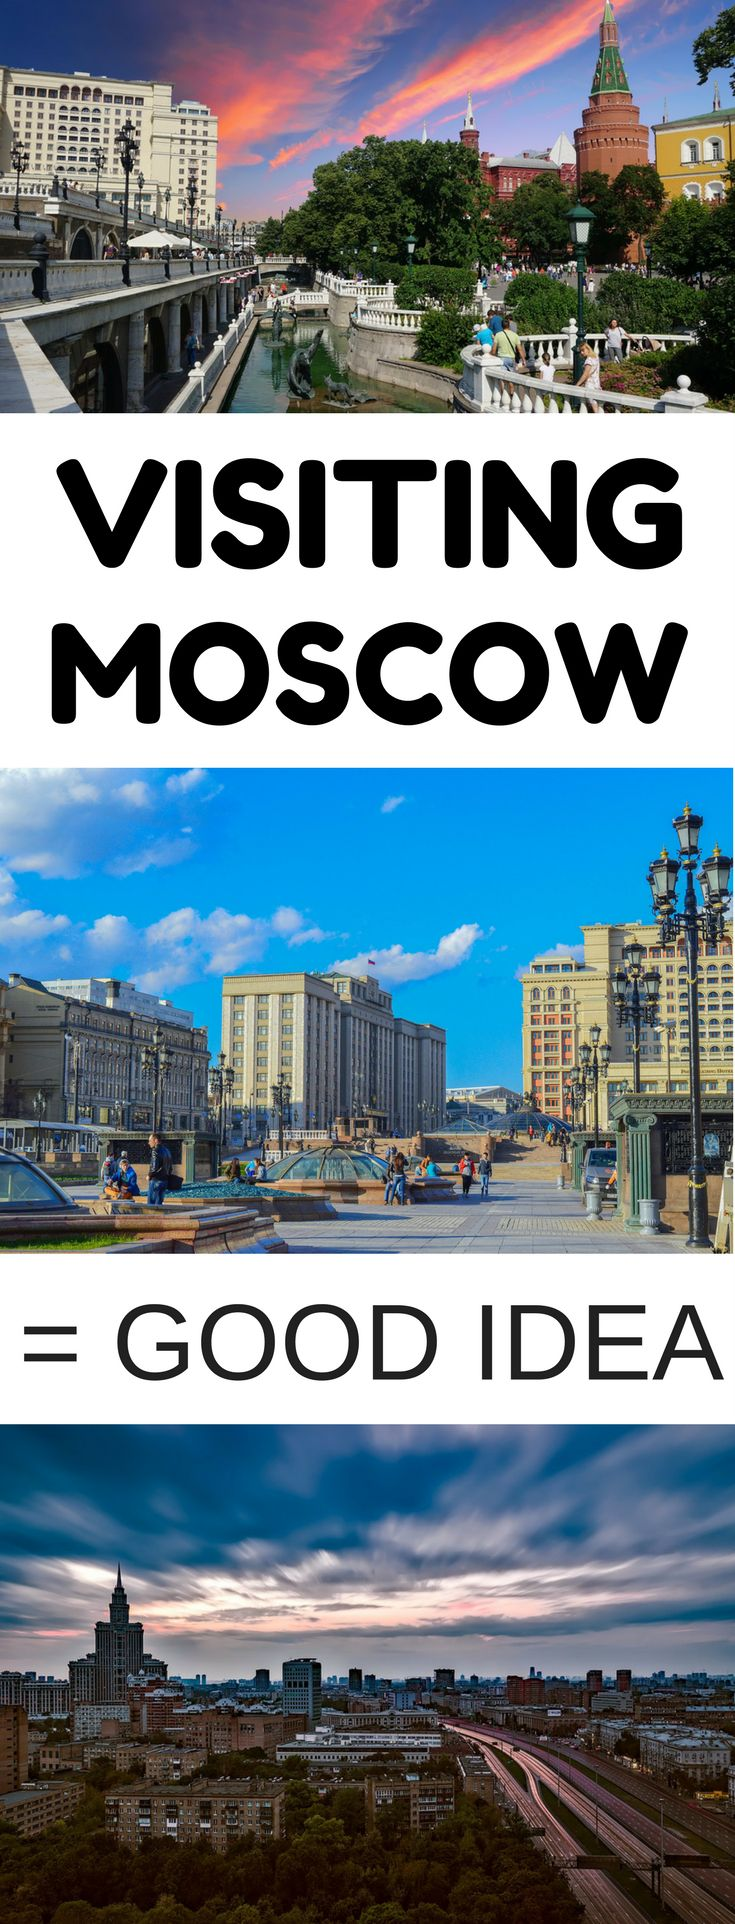 Moscow, Russia - If you're considering visiting Moscow, you should travel to Russia ASAP and visit the city. It's amazing with plenty of attractions for everyone